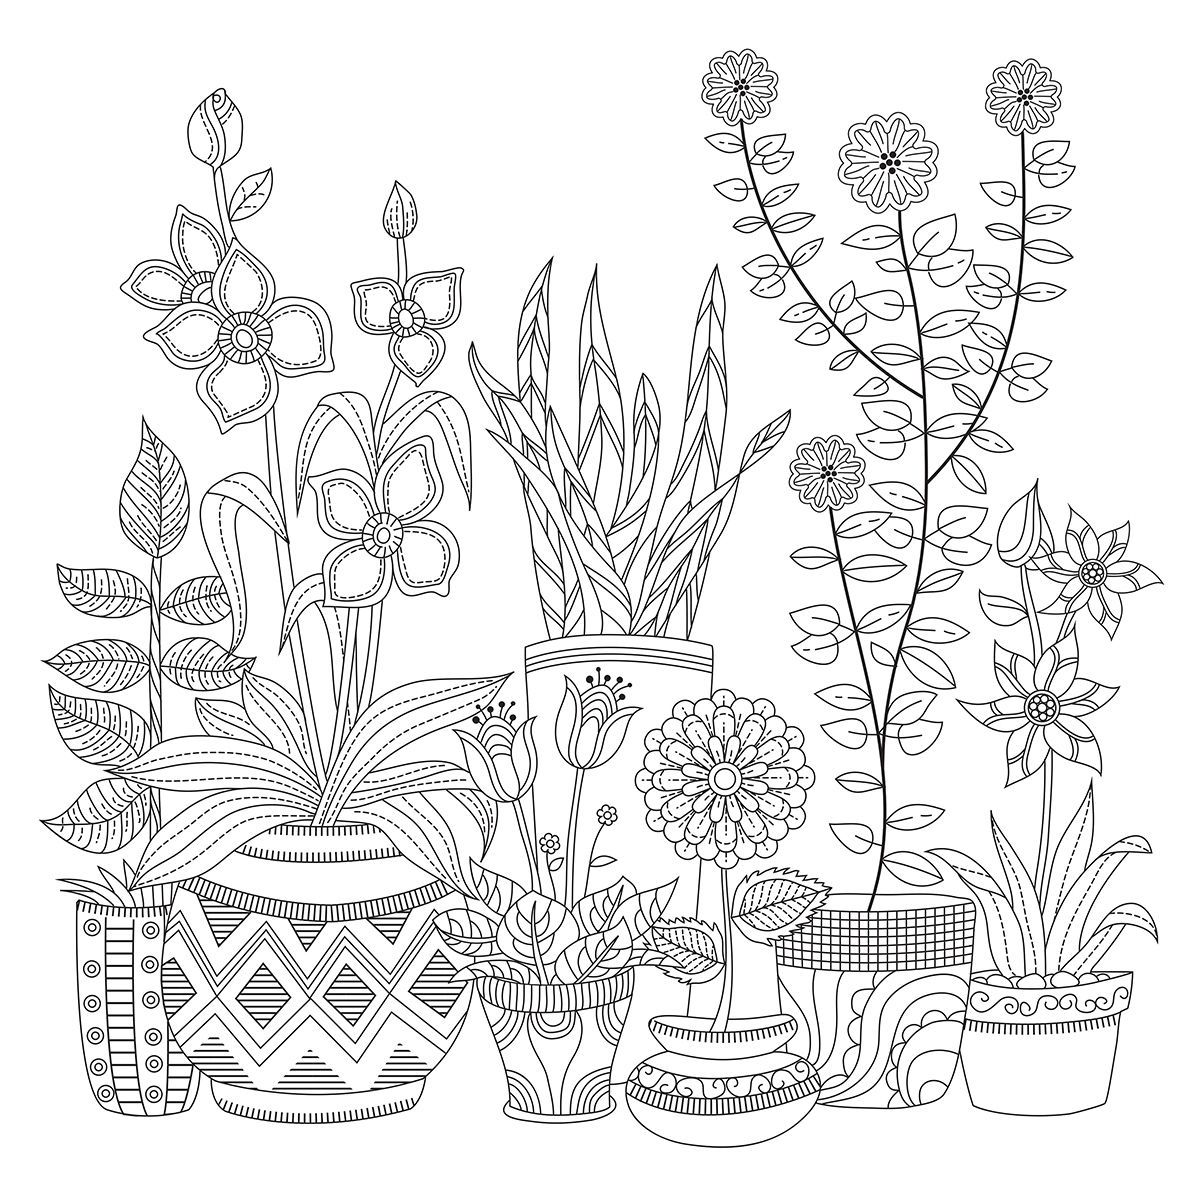 Kaisercolour Coloring Poster 27 X19 Plant Pots Colorful Drawings Pattern Coloring Pages Flower Drawing